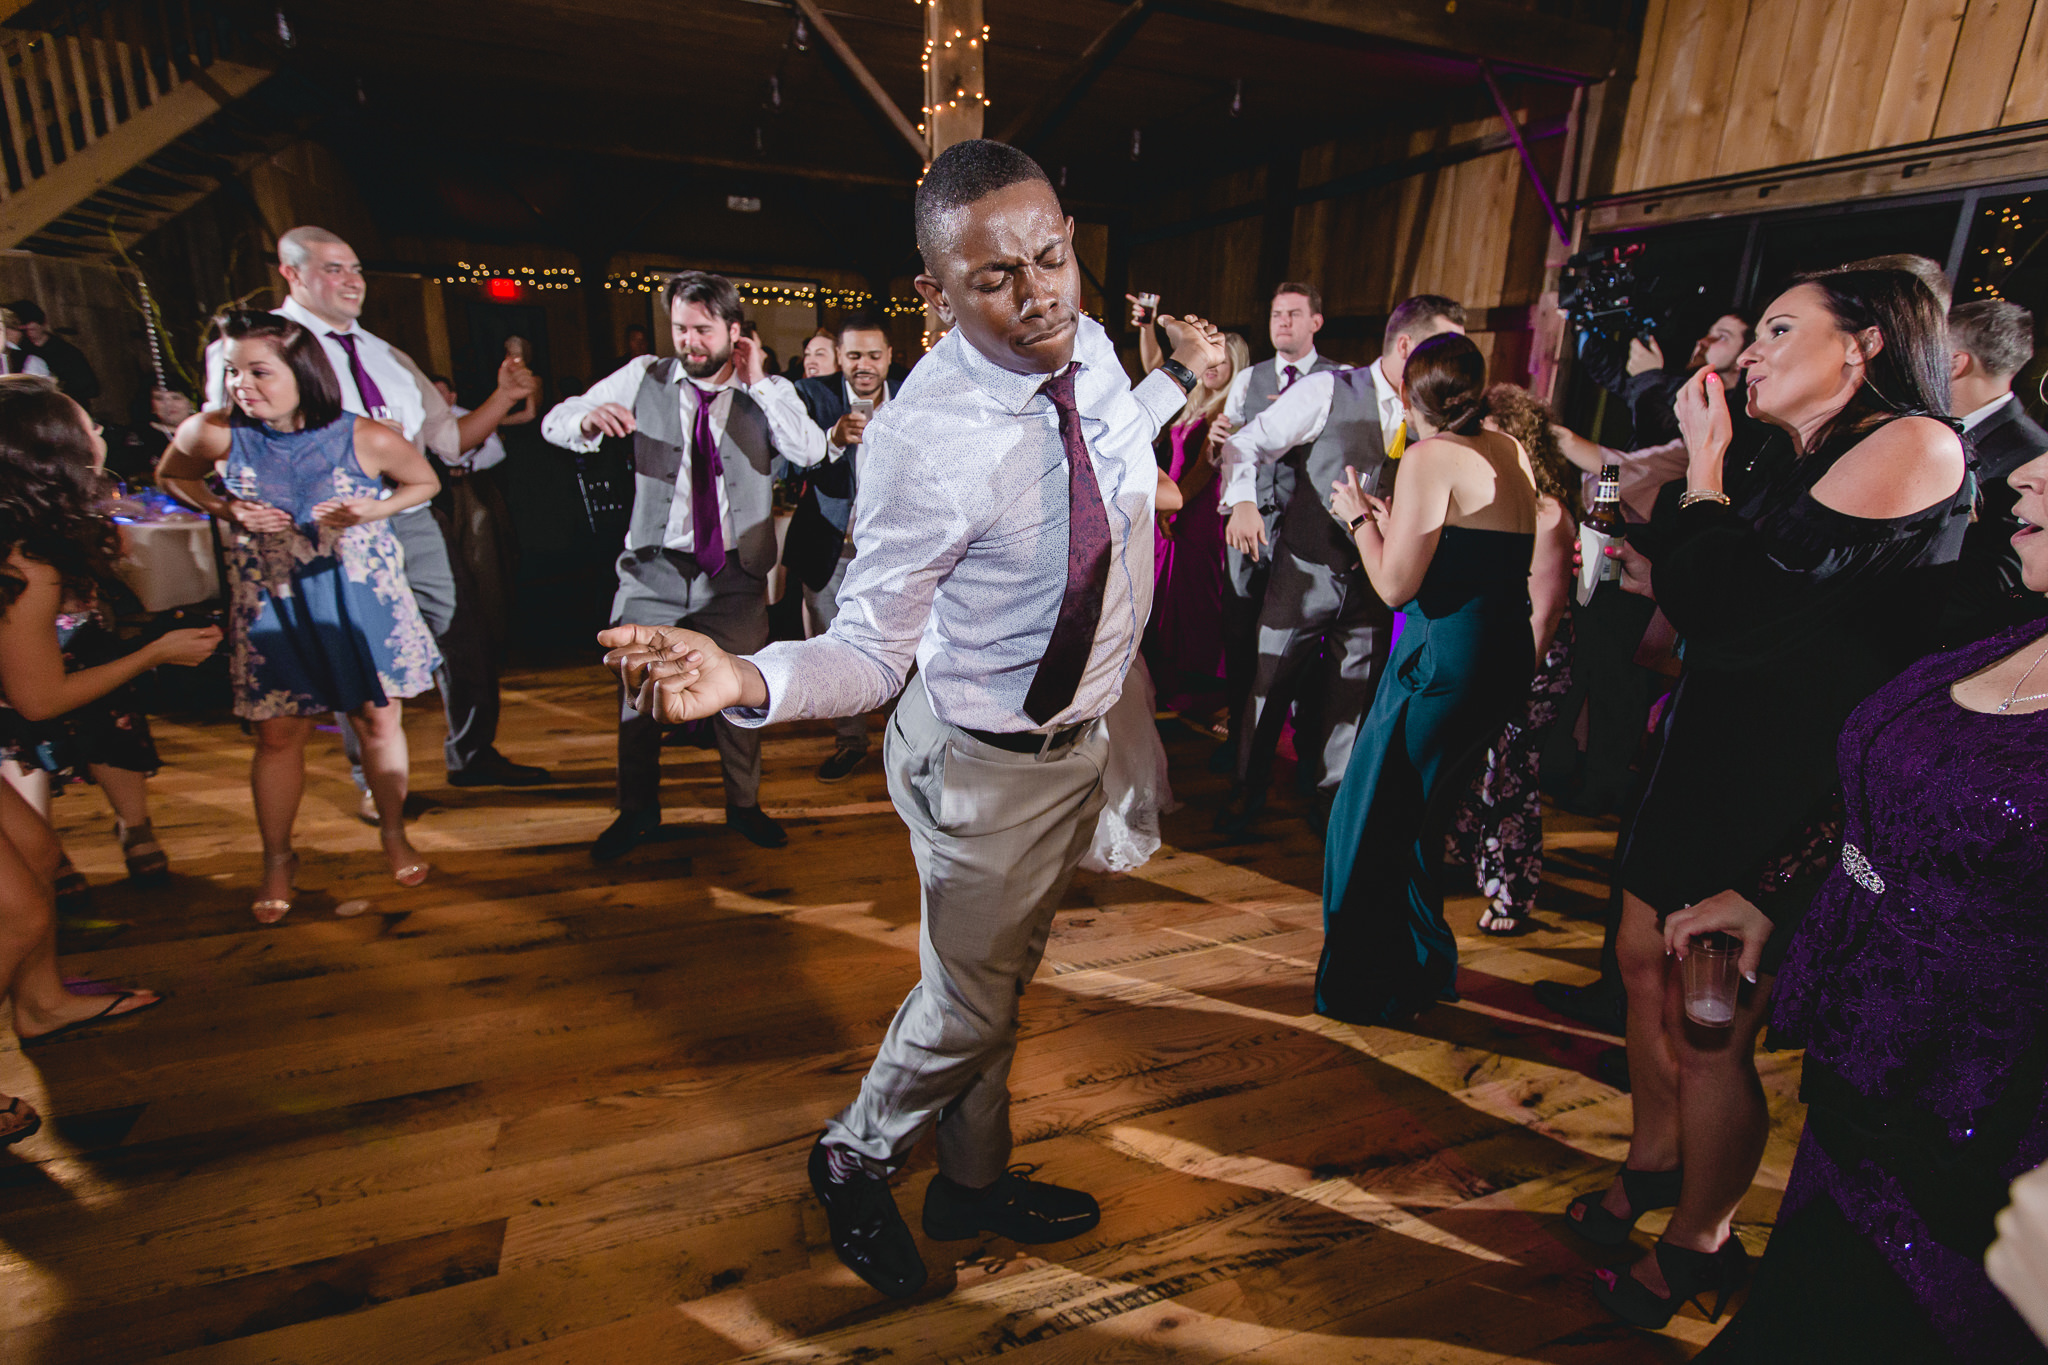 Guests dance at a wedding reception at White Barn